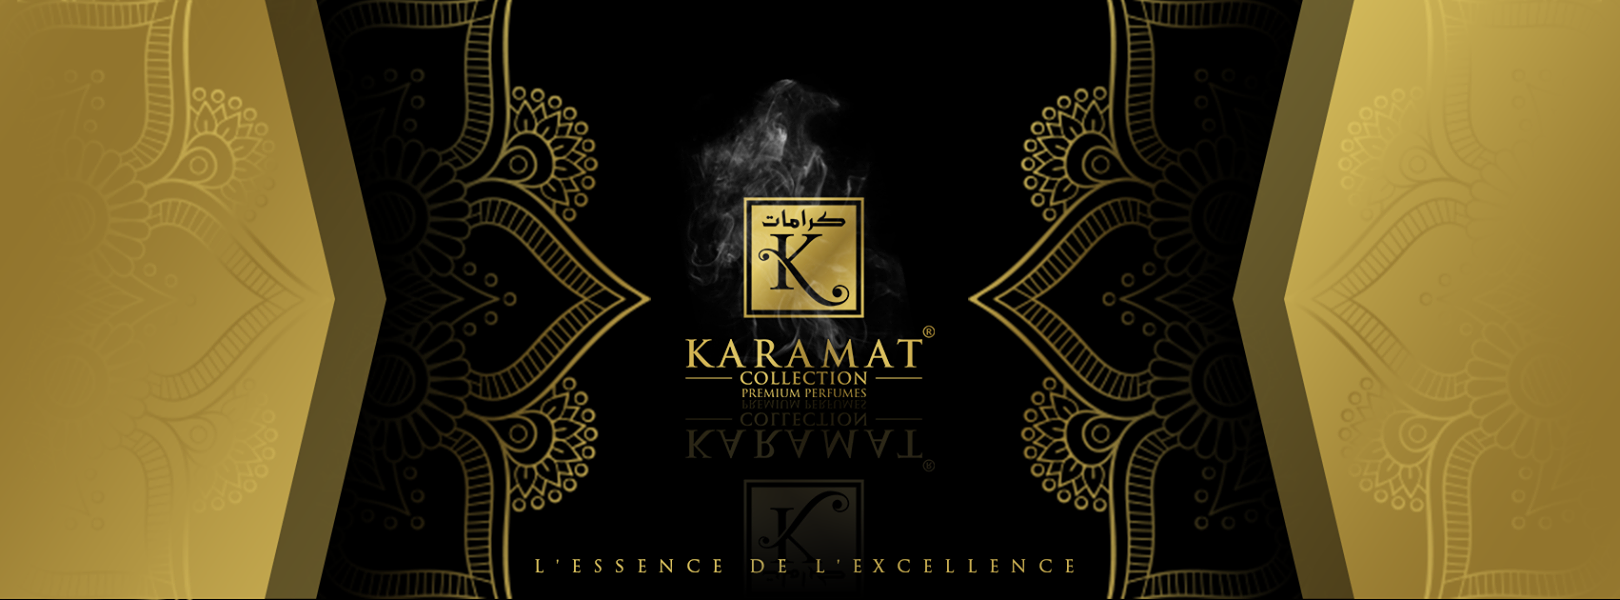 Karamat Collection